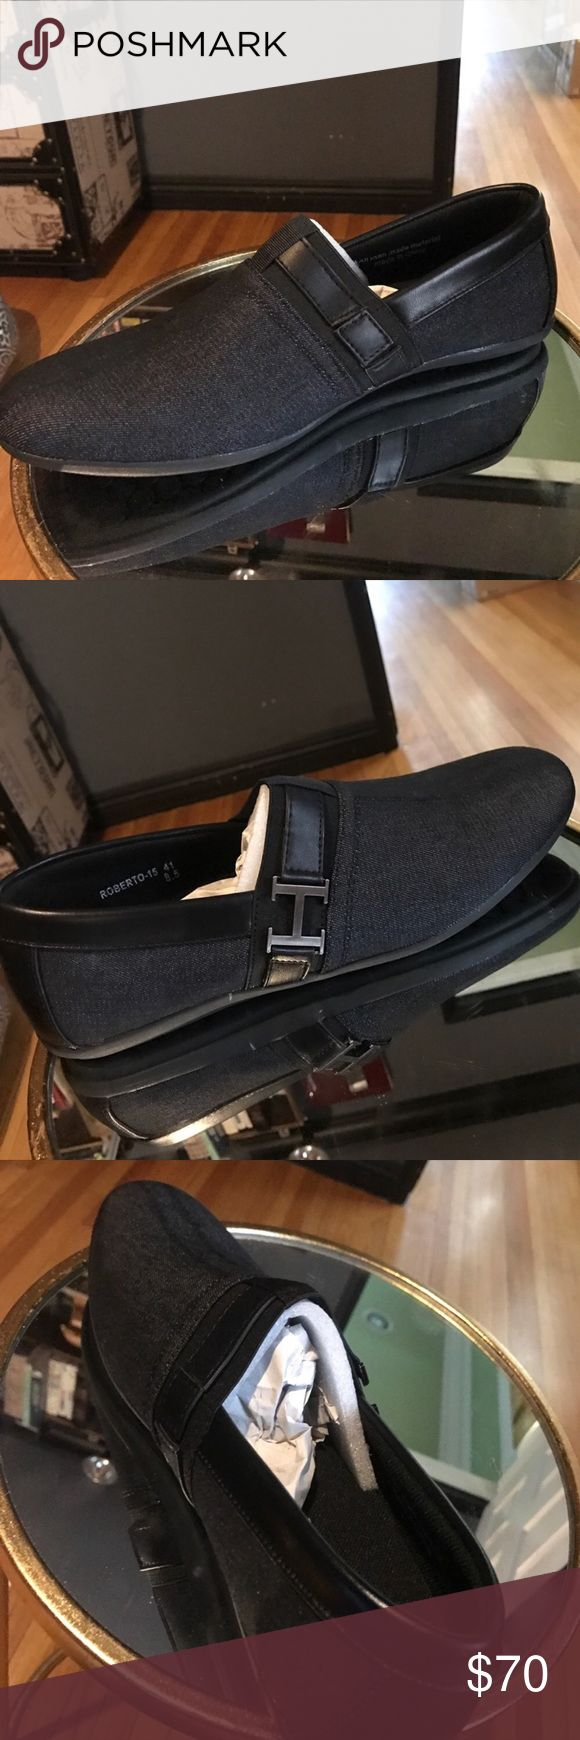 Denim men's driving shoes - Franco Venucci Franco Vanucci brand new denim driving shoes/loafers. Comes with original packaging and has never been worn. franco vanucci Shoes Loafers & Slip-Ons